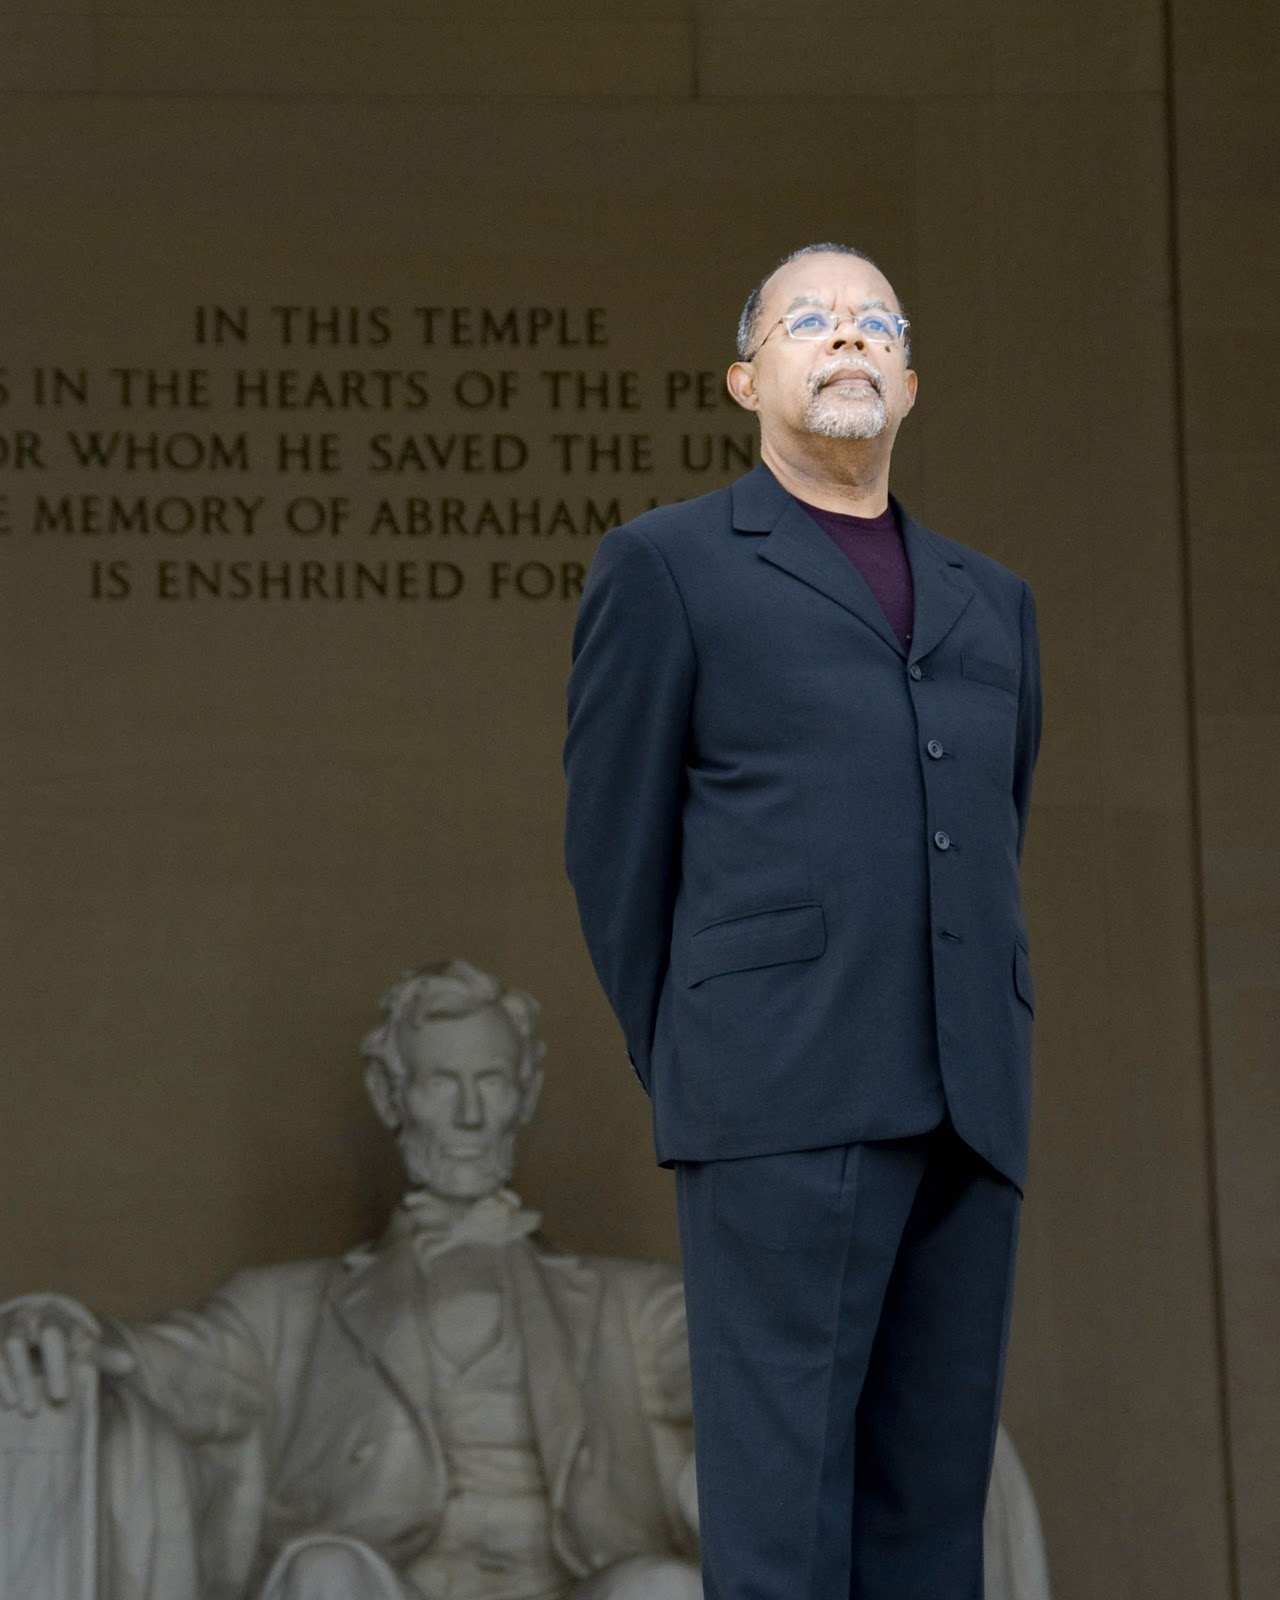 henry louis gates jr delusions of grandeur The harvard scholar henry louis gates jr says improving schools is the way to  open the middle class  the grandeur of great protest music.